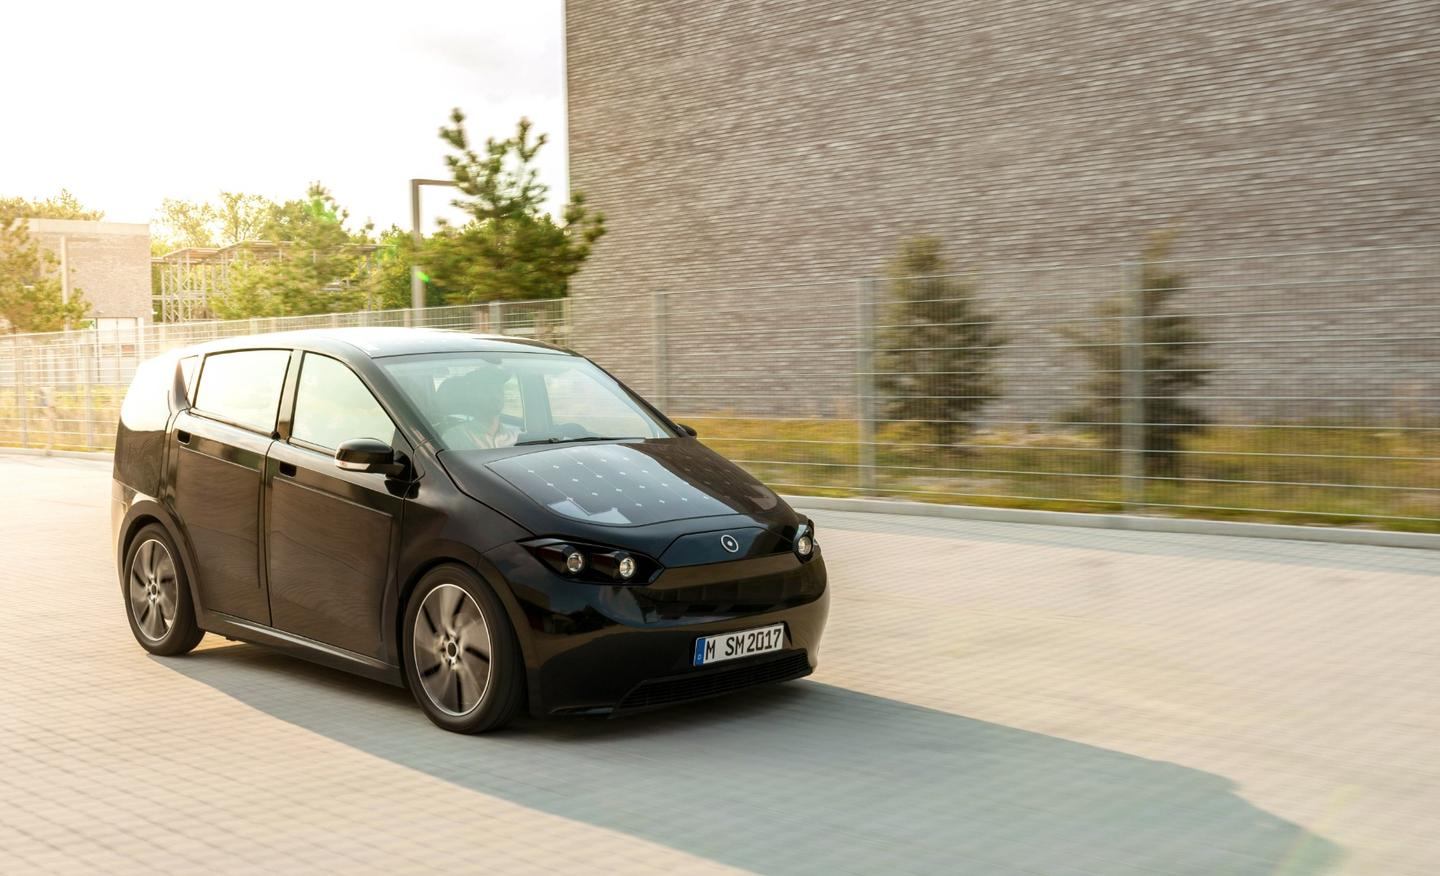 The PV panels installed in the hood, roof and body of the Sion EV are reported to add up to 30 km per day to the range of the car